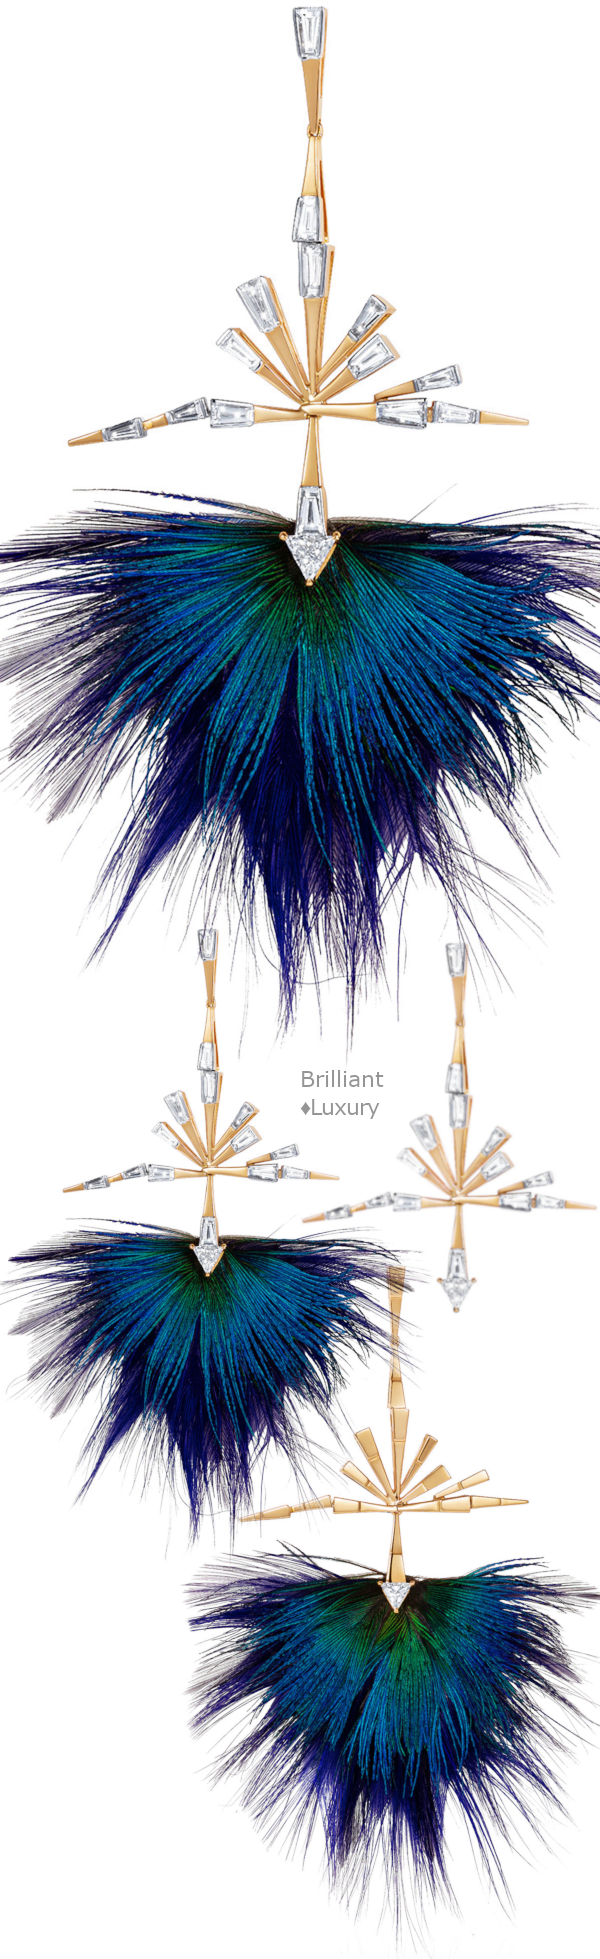 Removable Peacock feathered 18K diamond earrings #jewellery #accessories